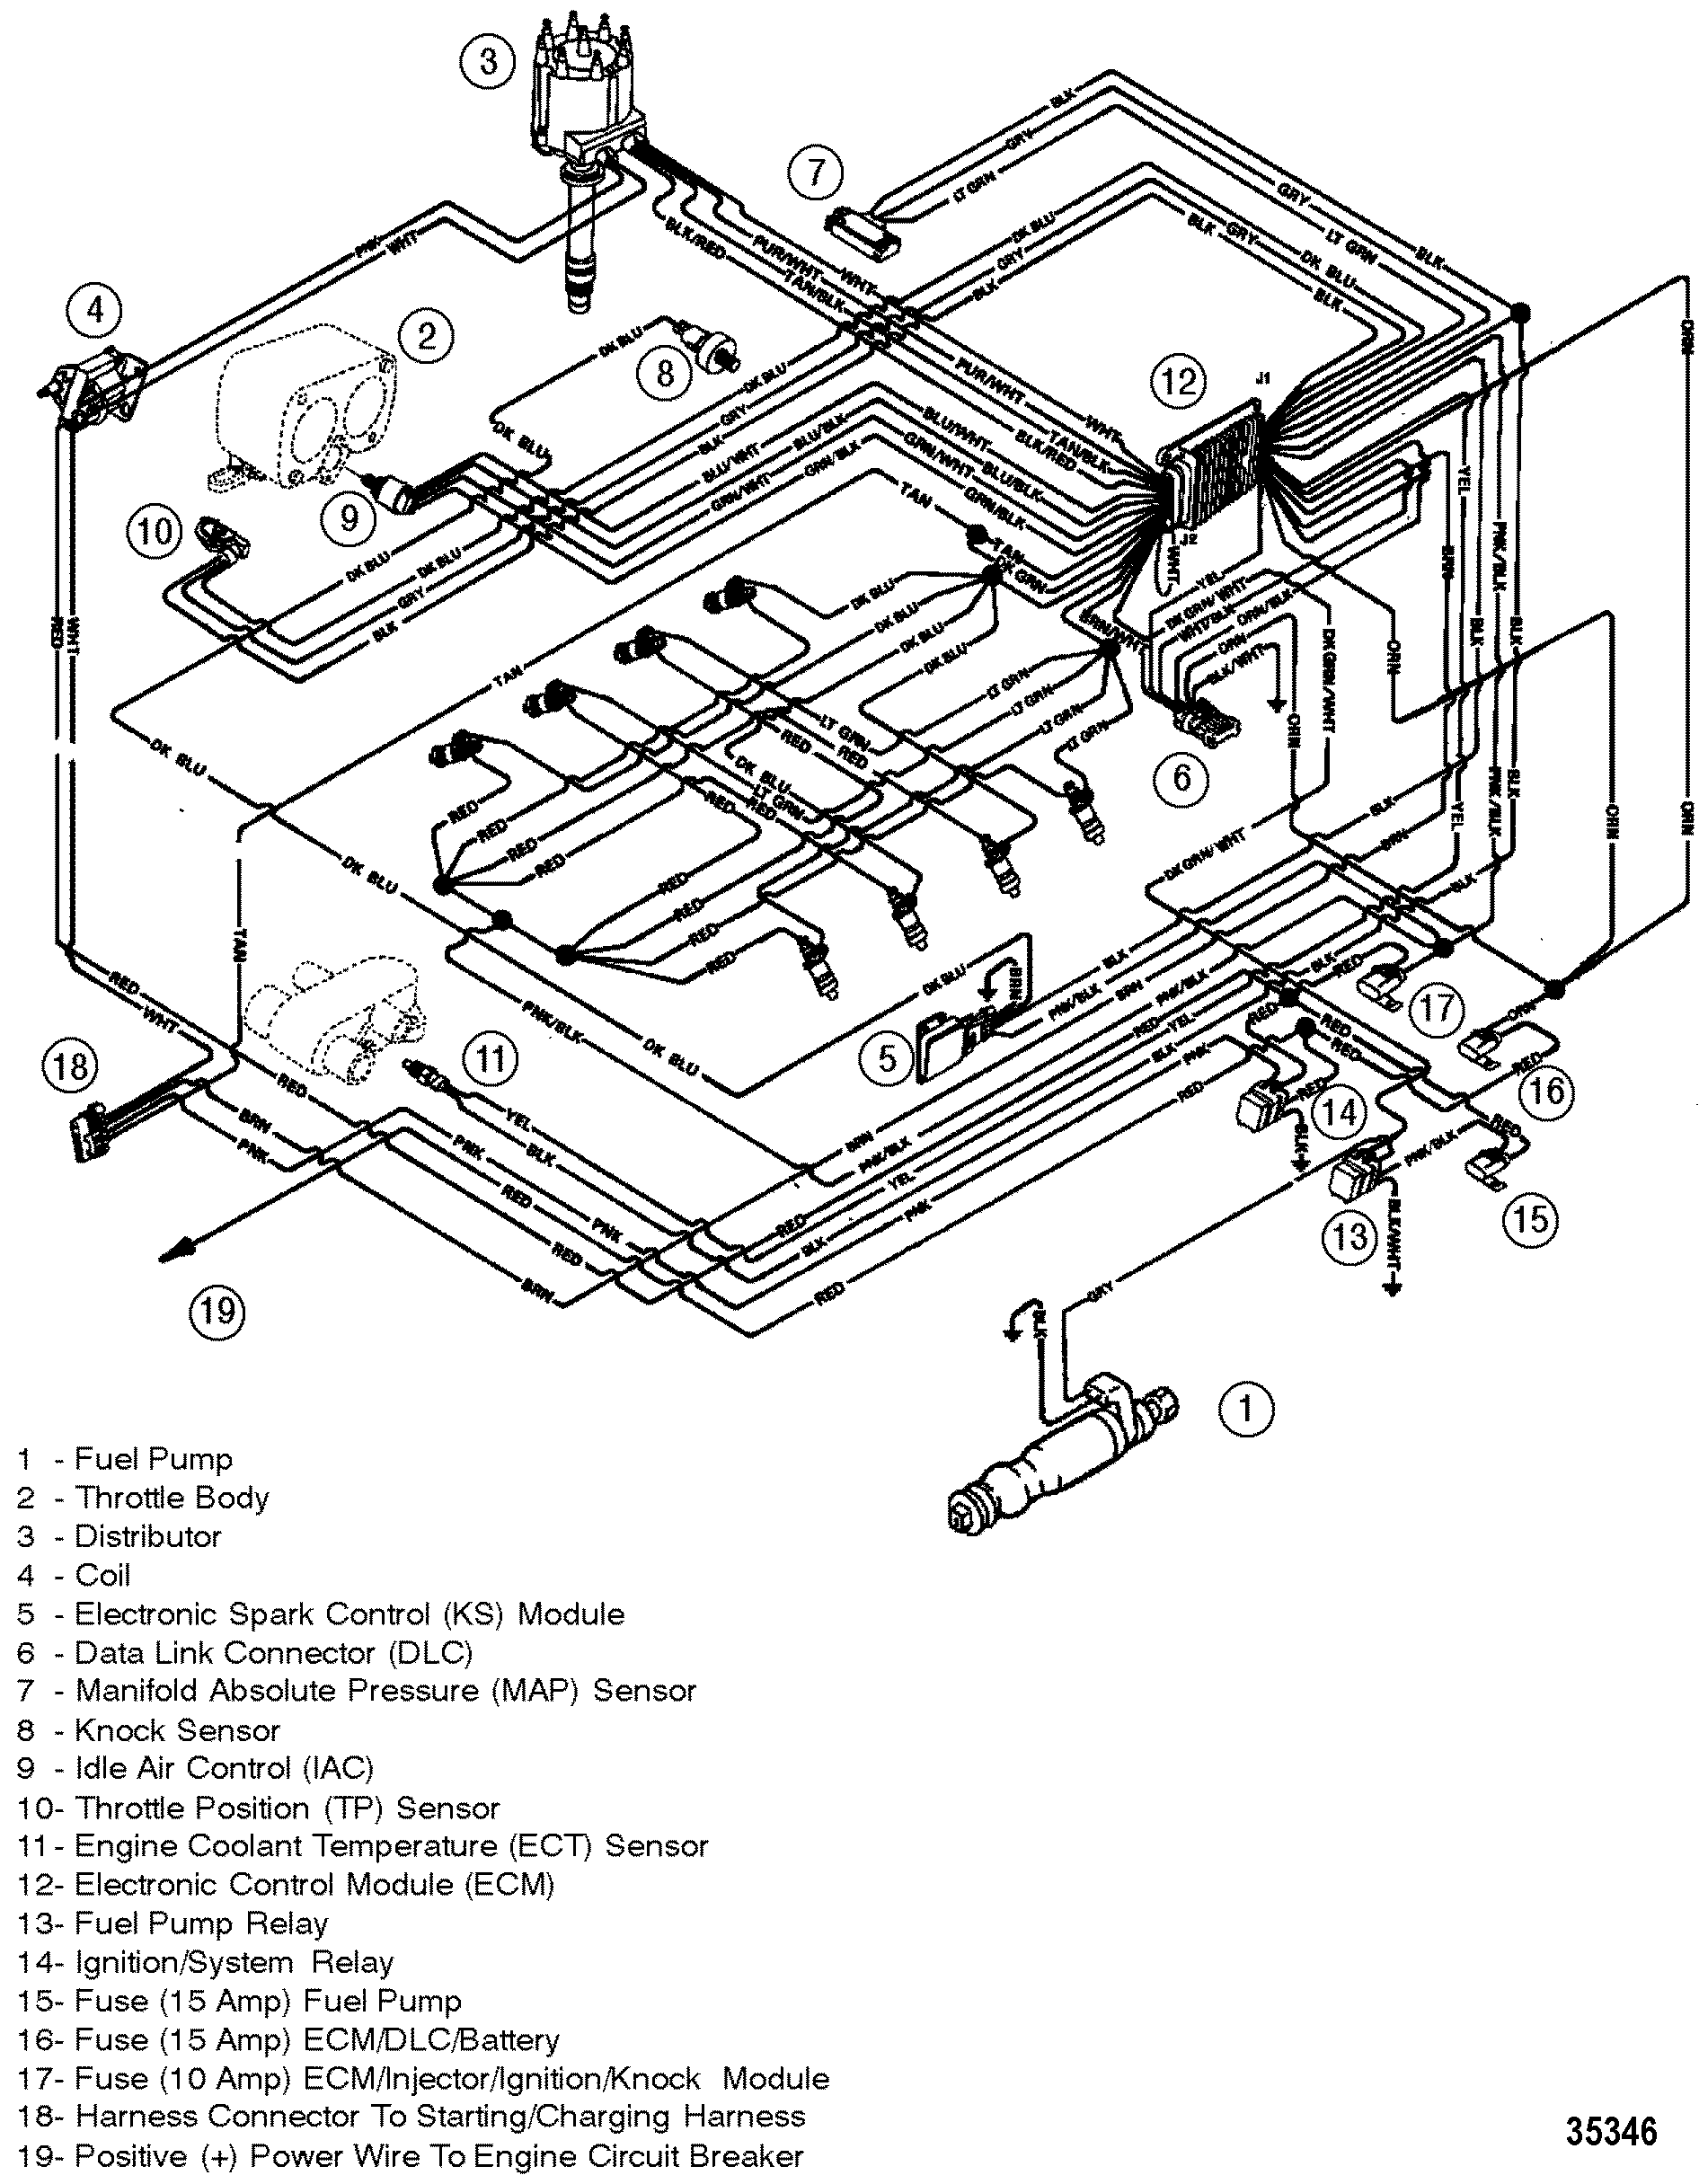 mercruiser 502 mpi wiring diagram - wiring diagram park ill-movement -  ill-movement.bubbleblog.it  bubbleblog